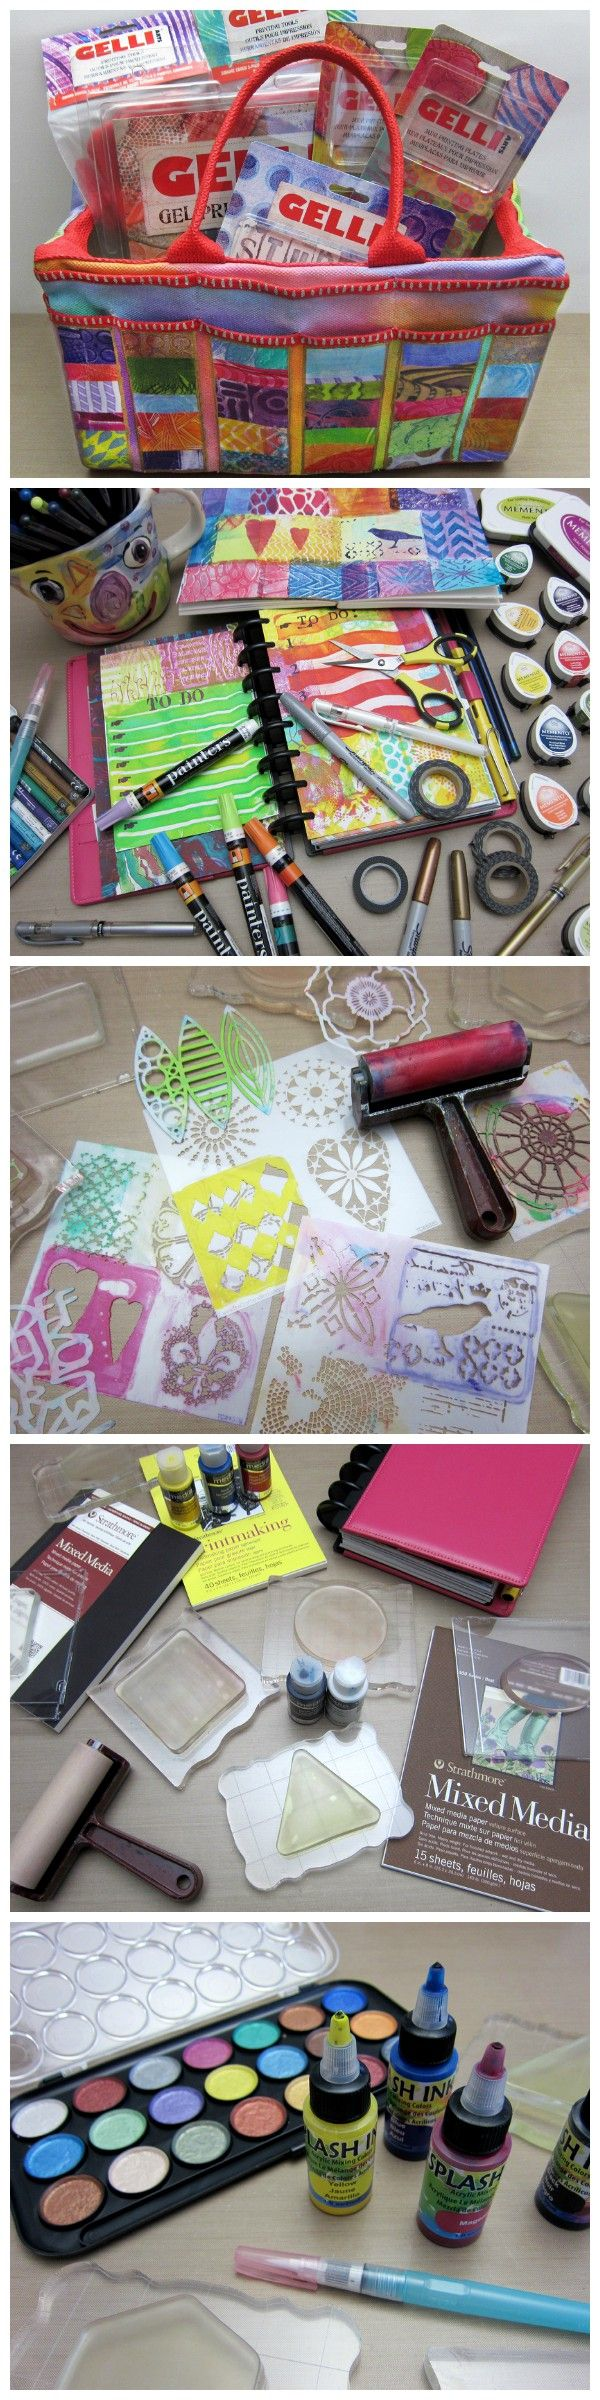 GELLI Printing & Stamping in Planners, on Art Totes and in Art Journals! Check out blog tutorial and video!